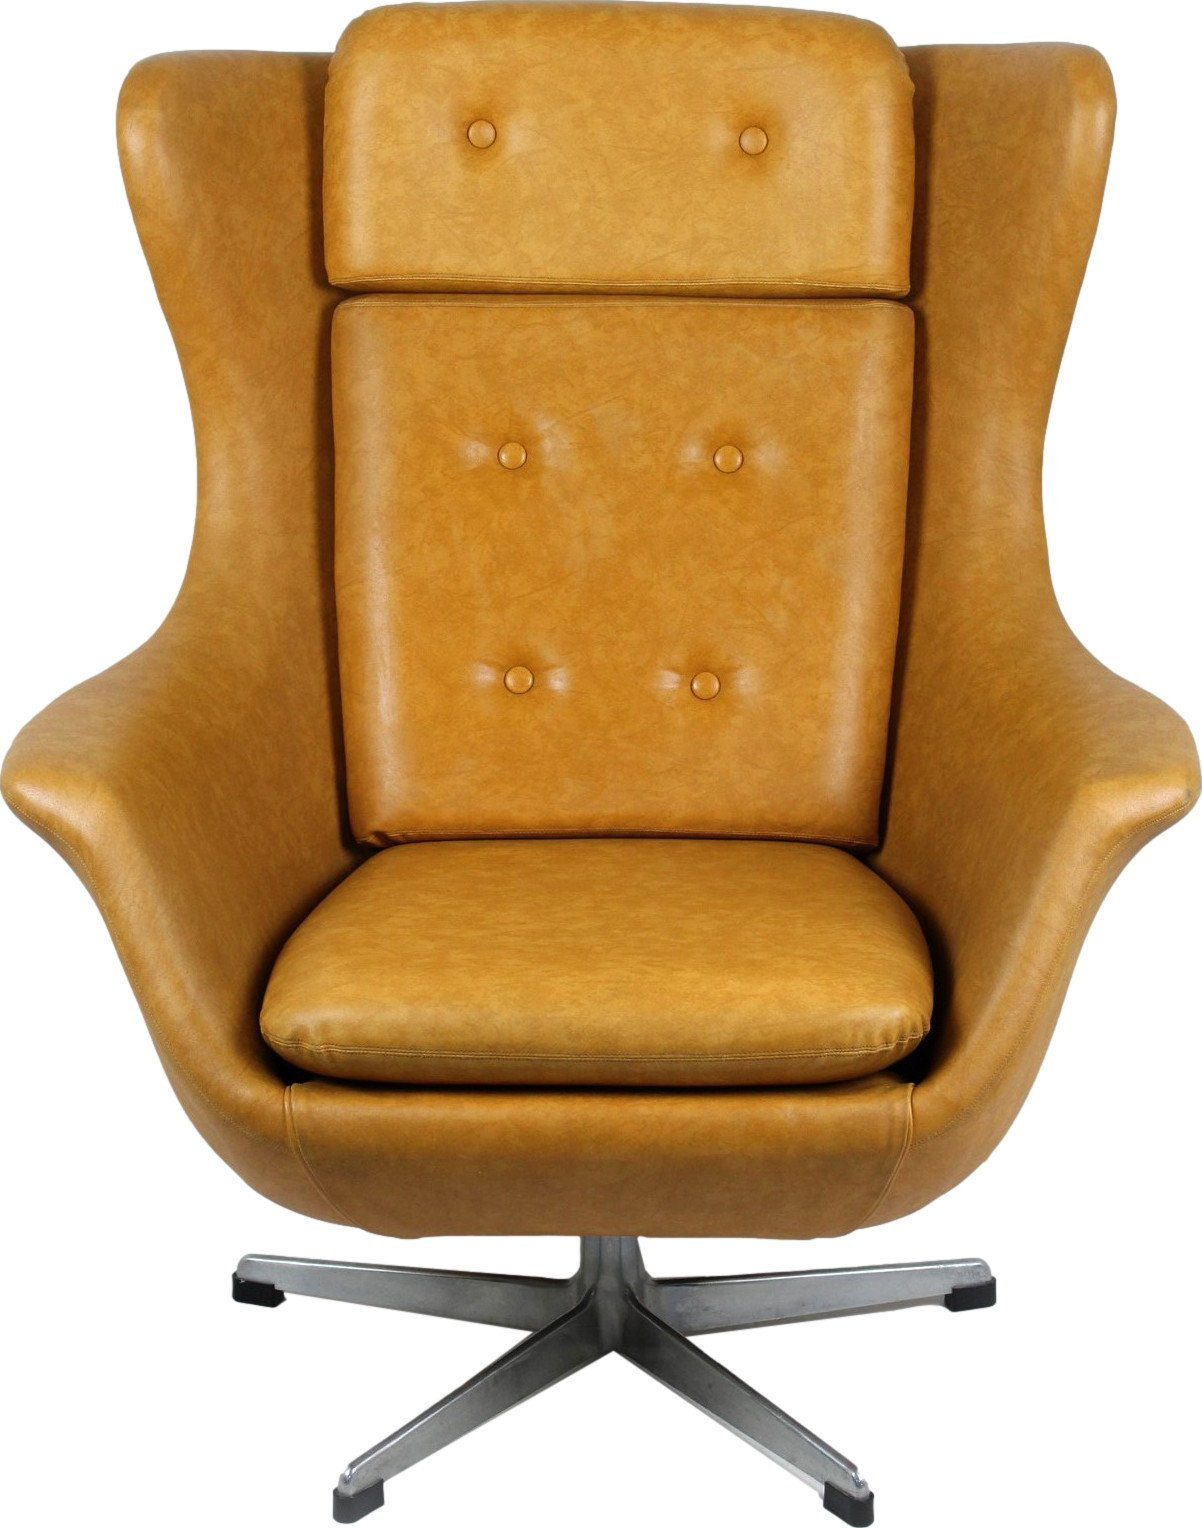 Swivel Chair, UP Závody, Czechoslovakia, 1970s